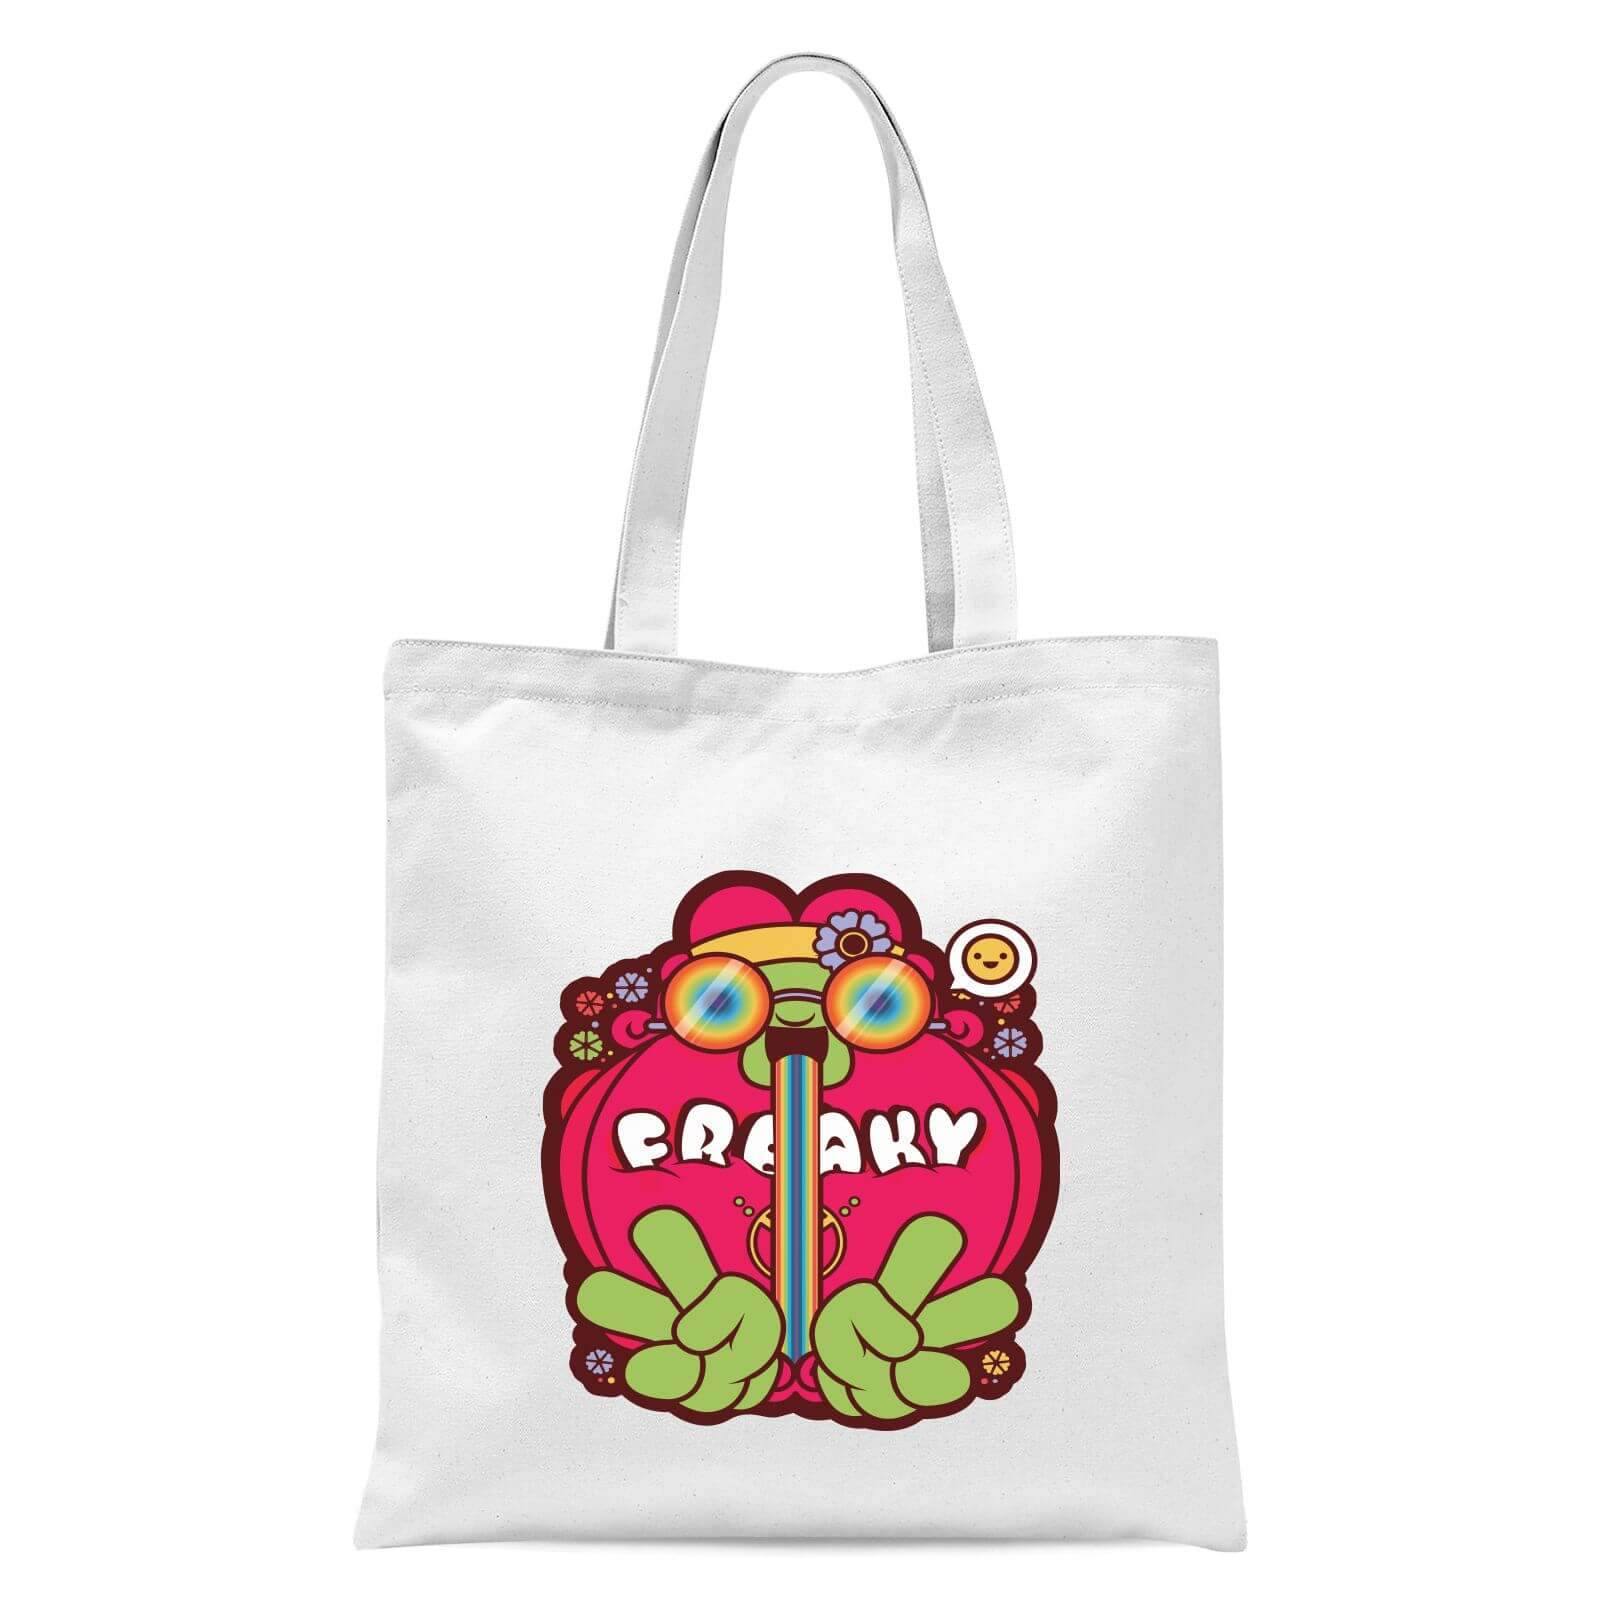 IWOOT Hippie Psychedelic Cartoon Tote Bag - White